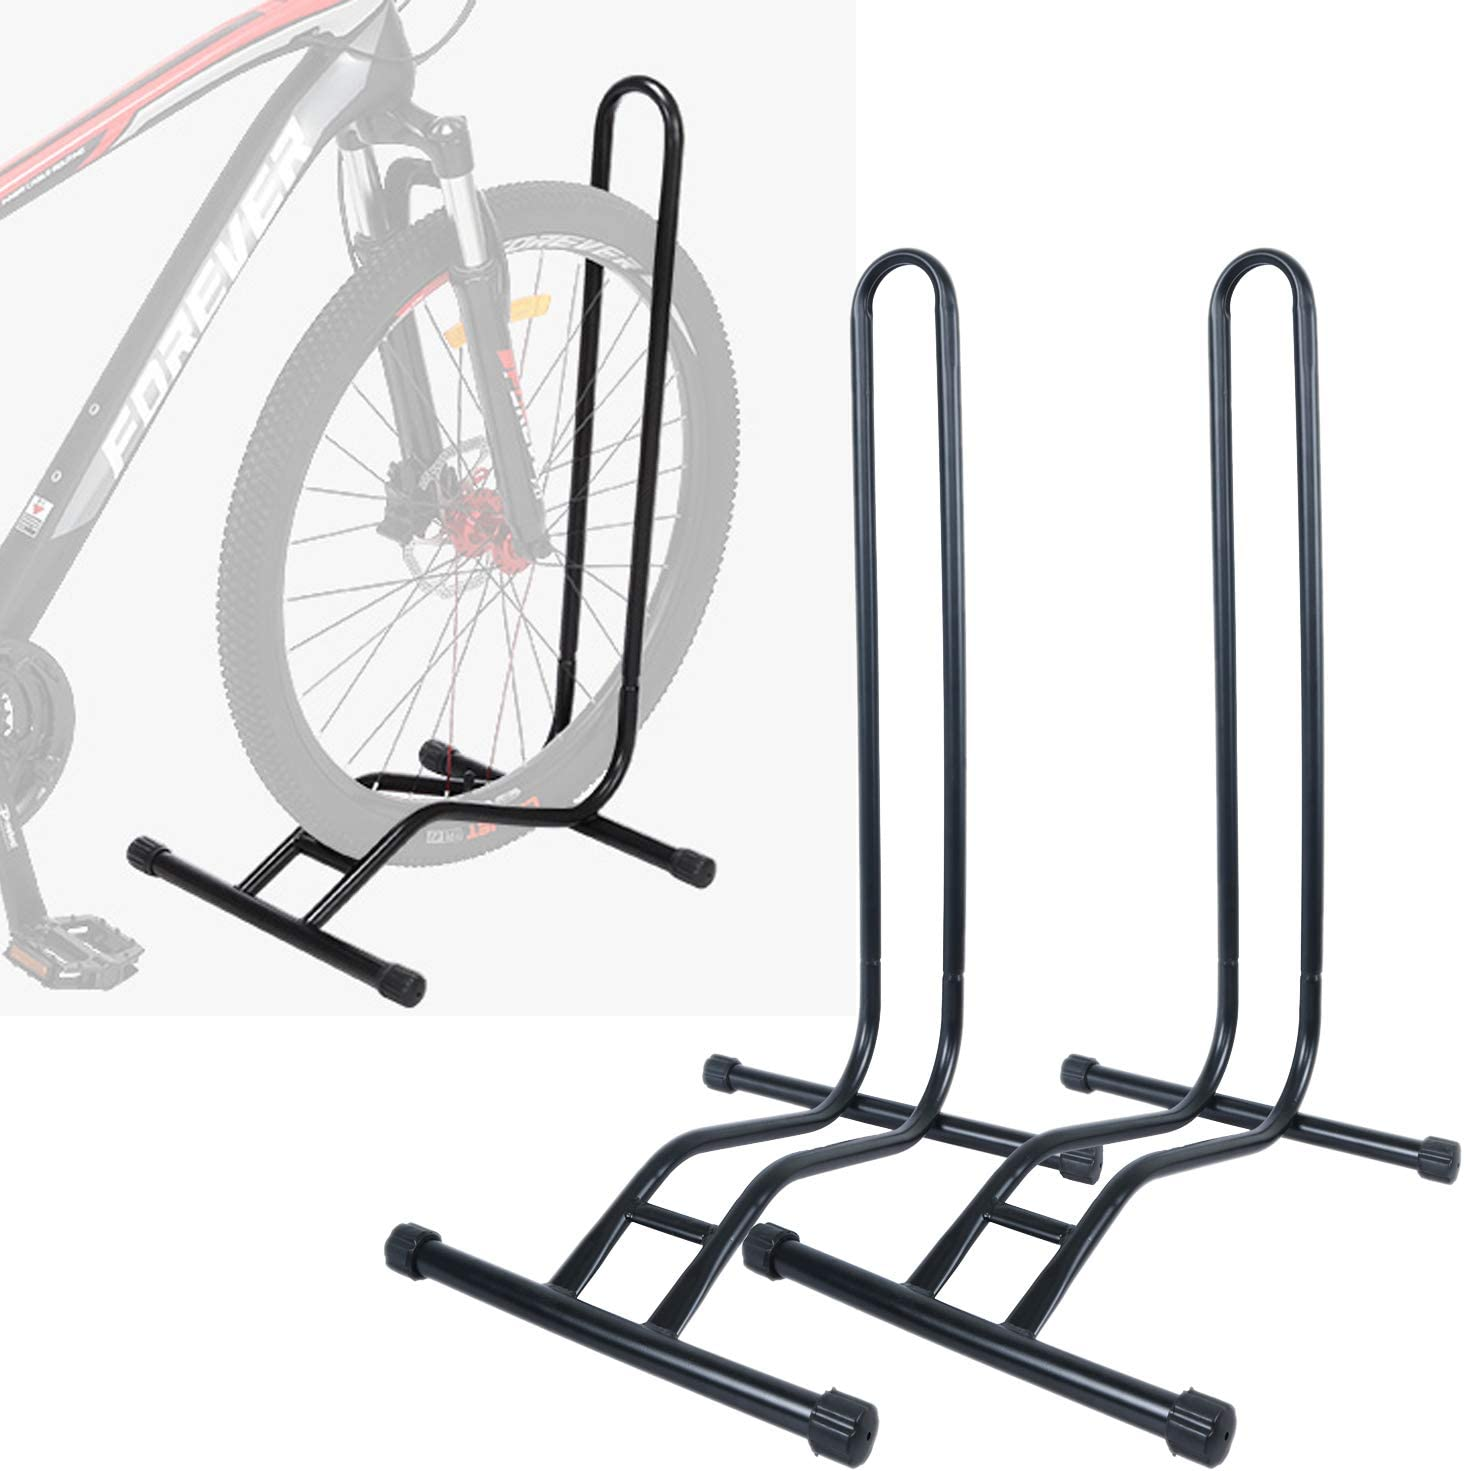 Bike Stand 2pcs Large Road Bicycle Storage Hooks Wall Mount Holder Hangers